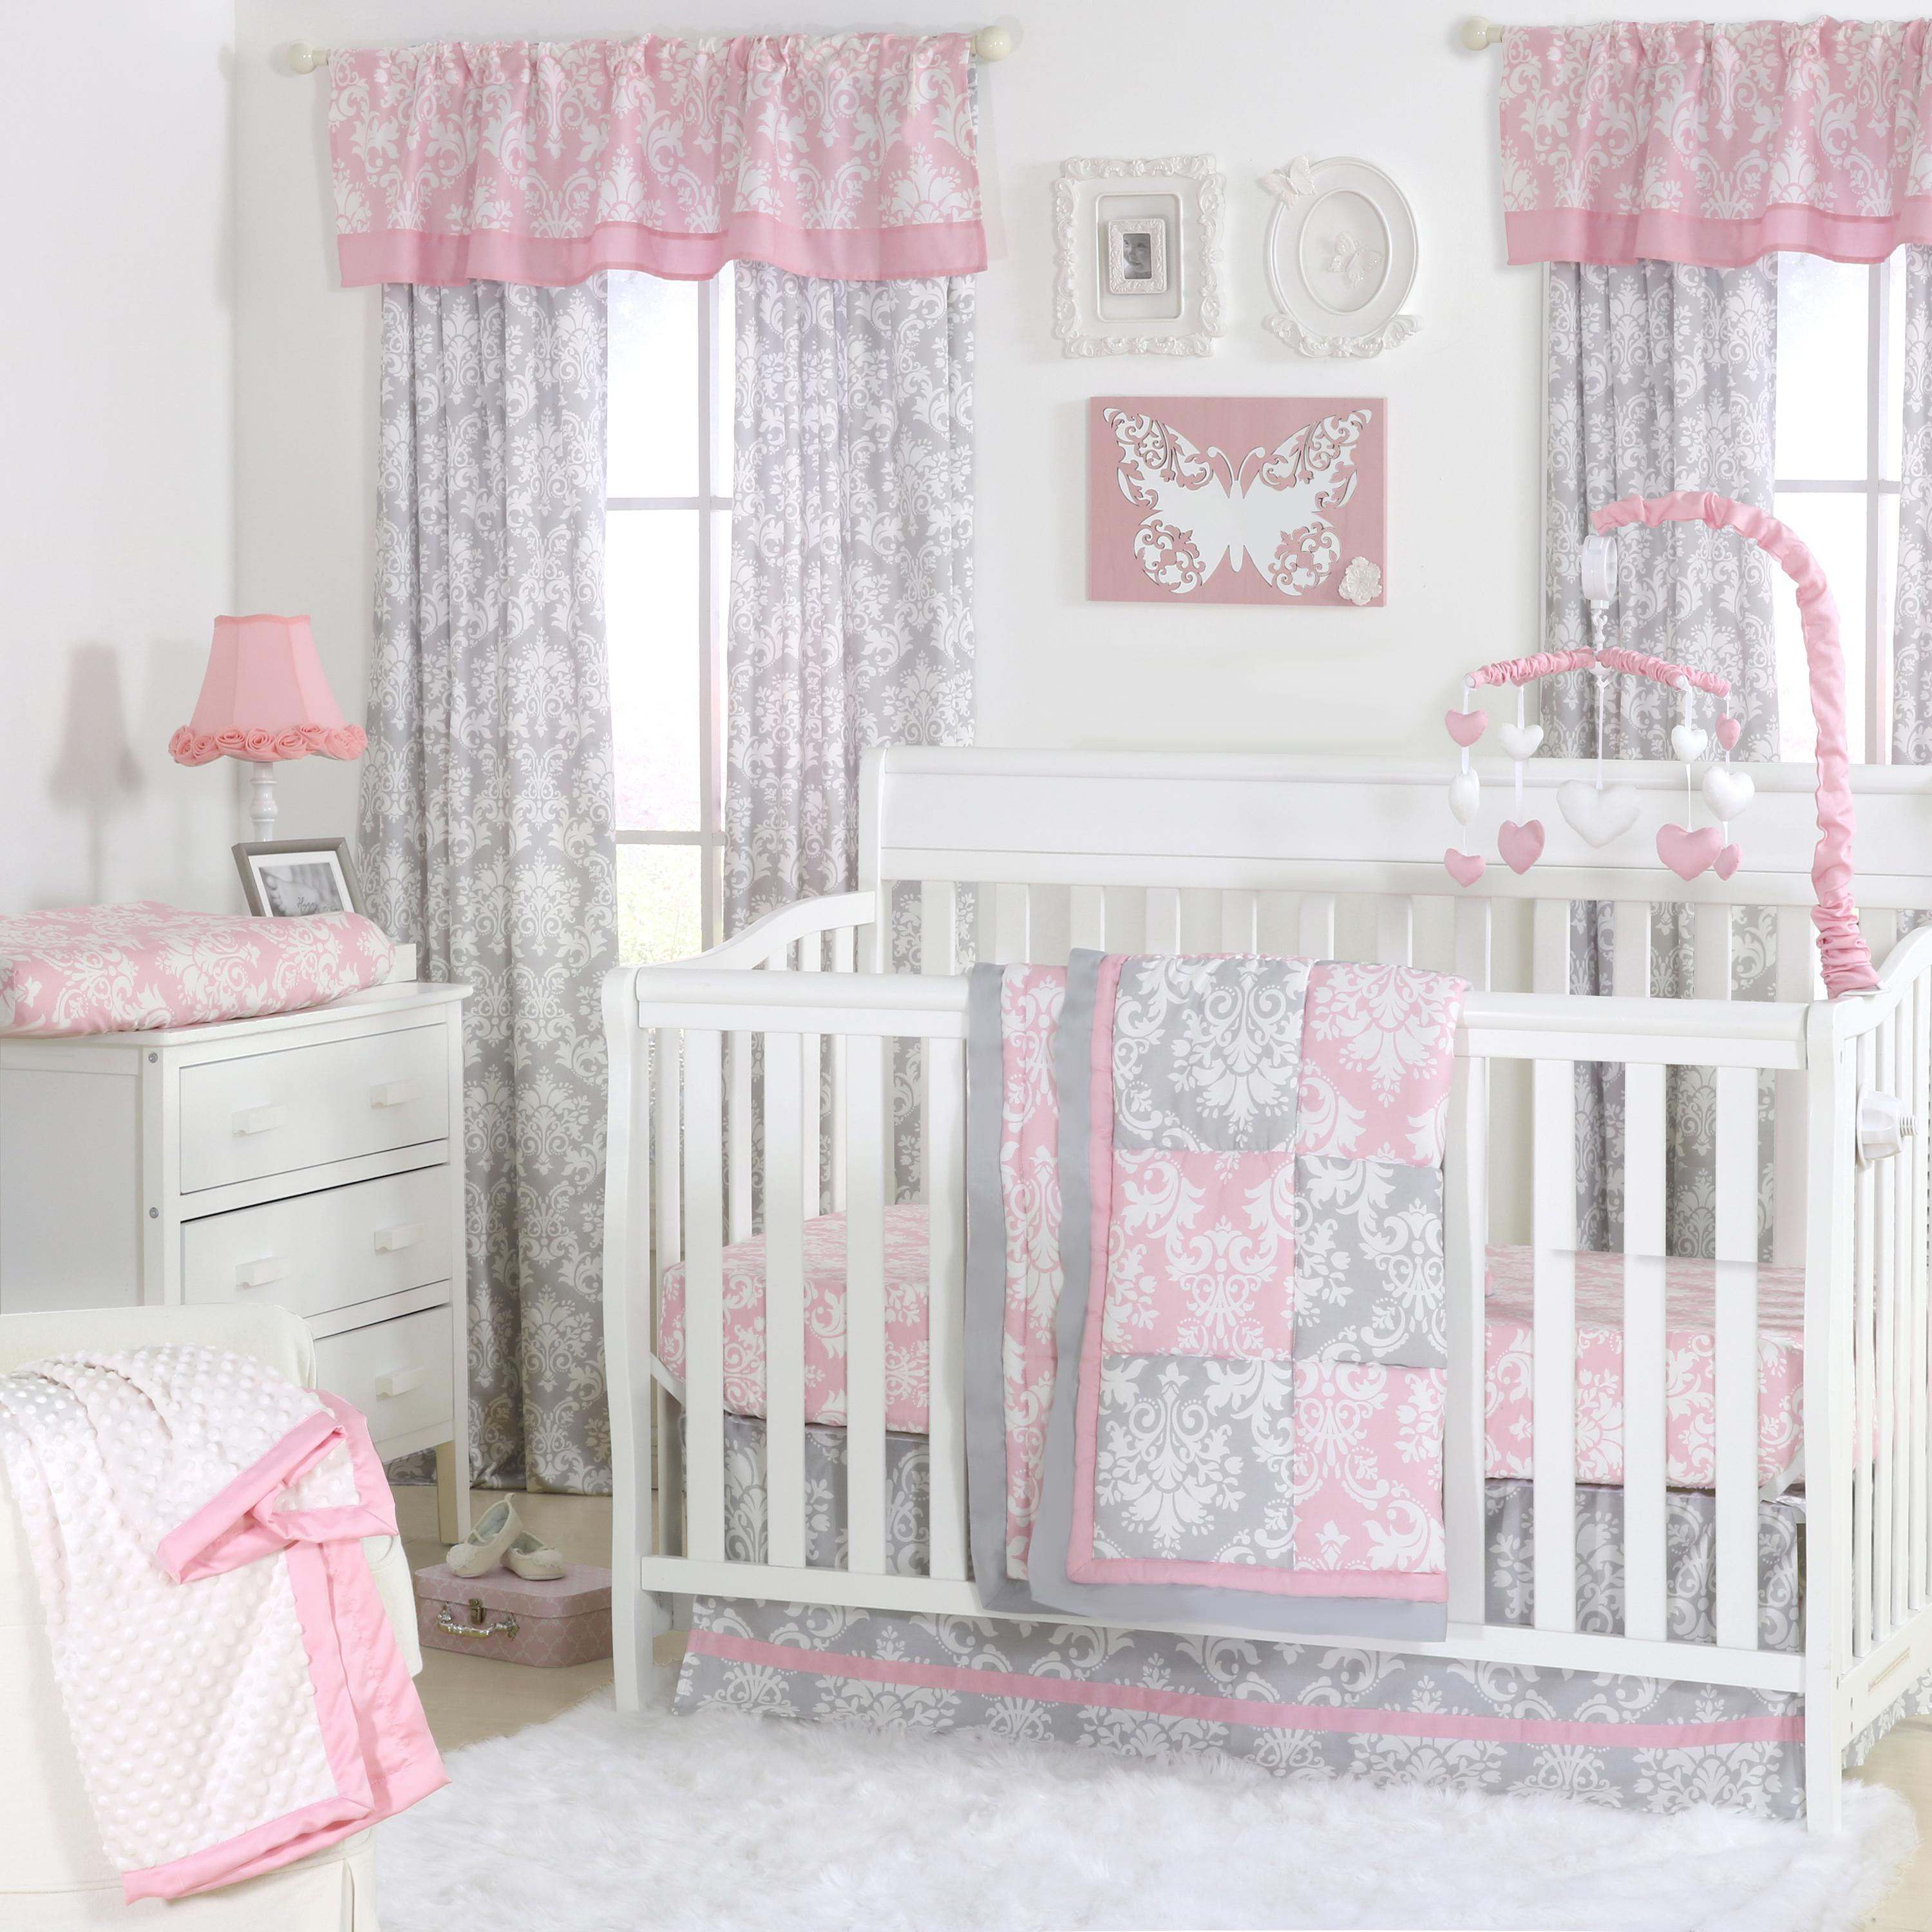 daybed by crib on beautiful cribs the american company featured pin baby haven for percale hill ruffle dust